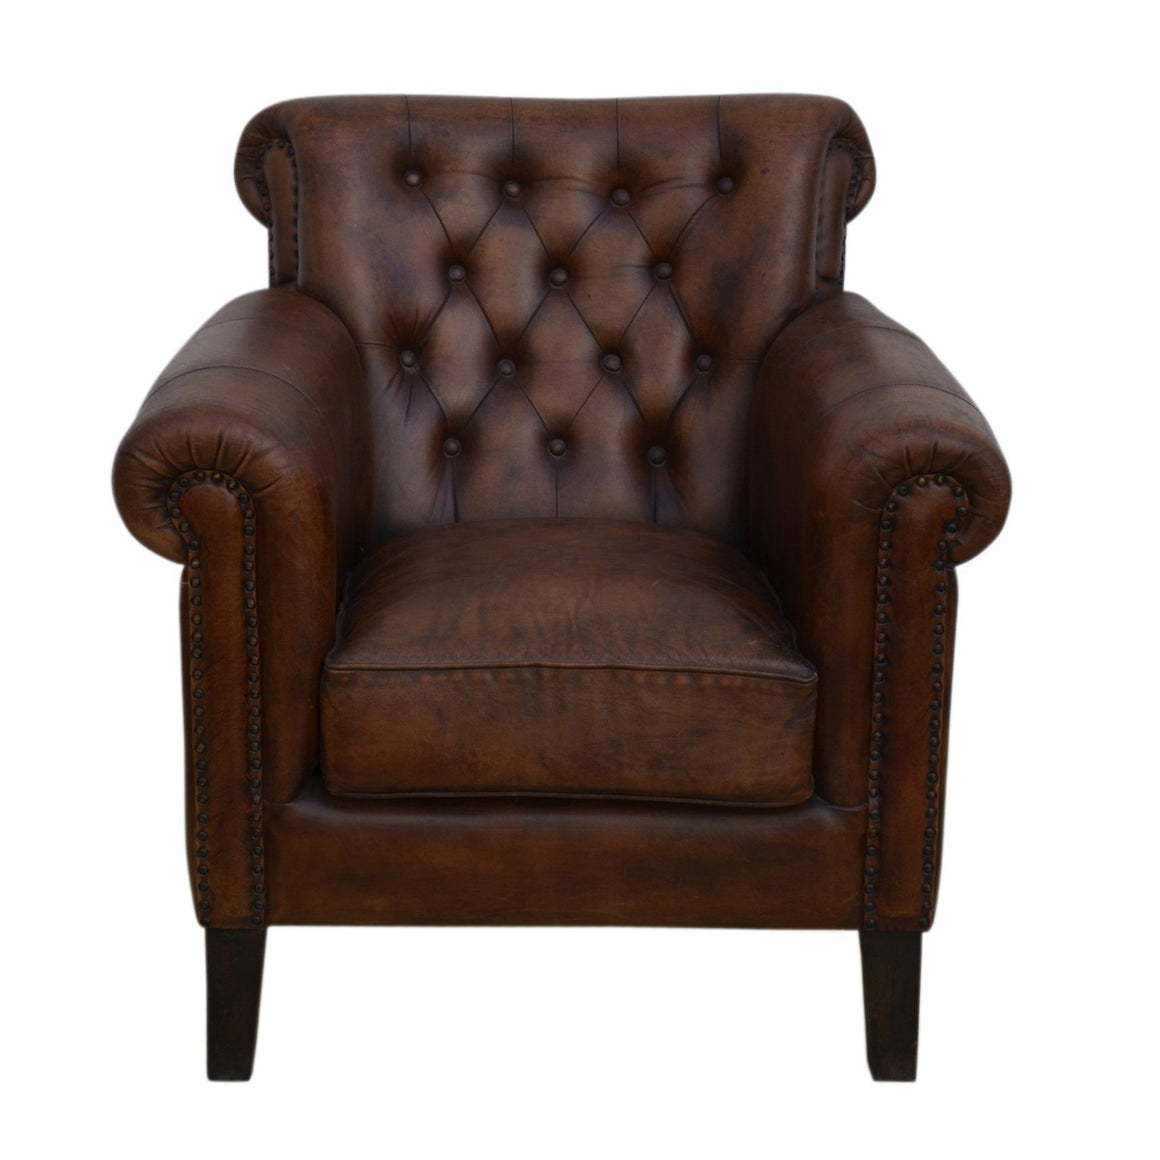 CHOCOLATE LEATHER ARMCHAIR Philbee Interiors